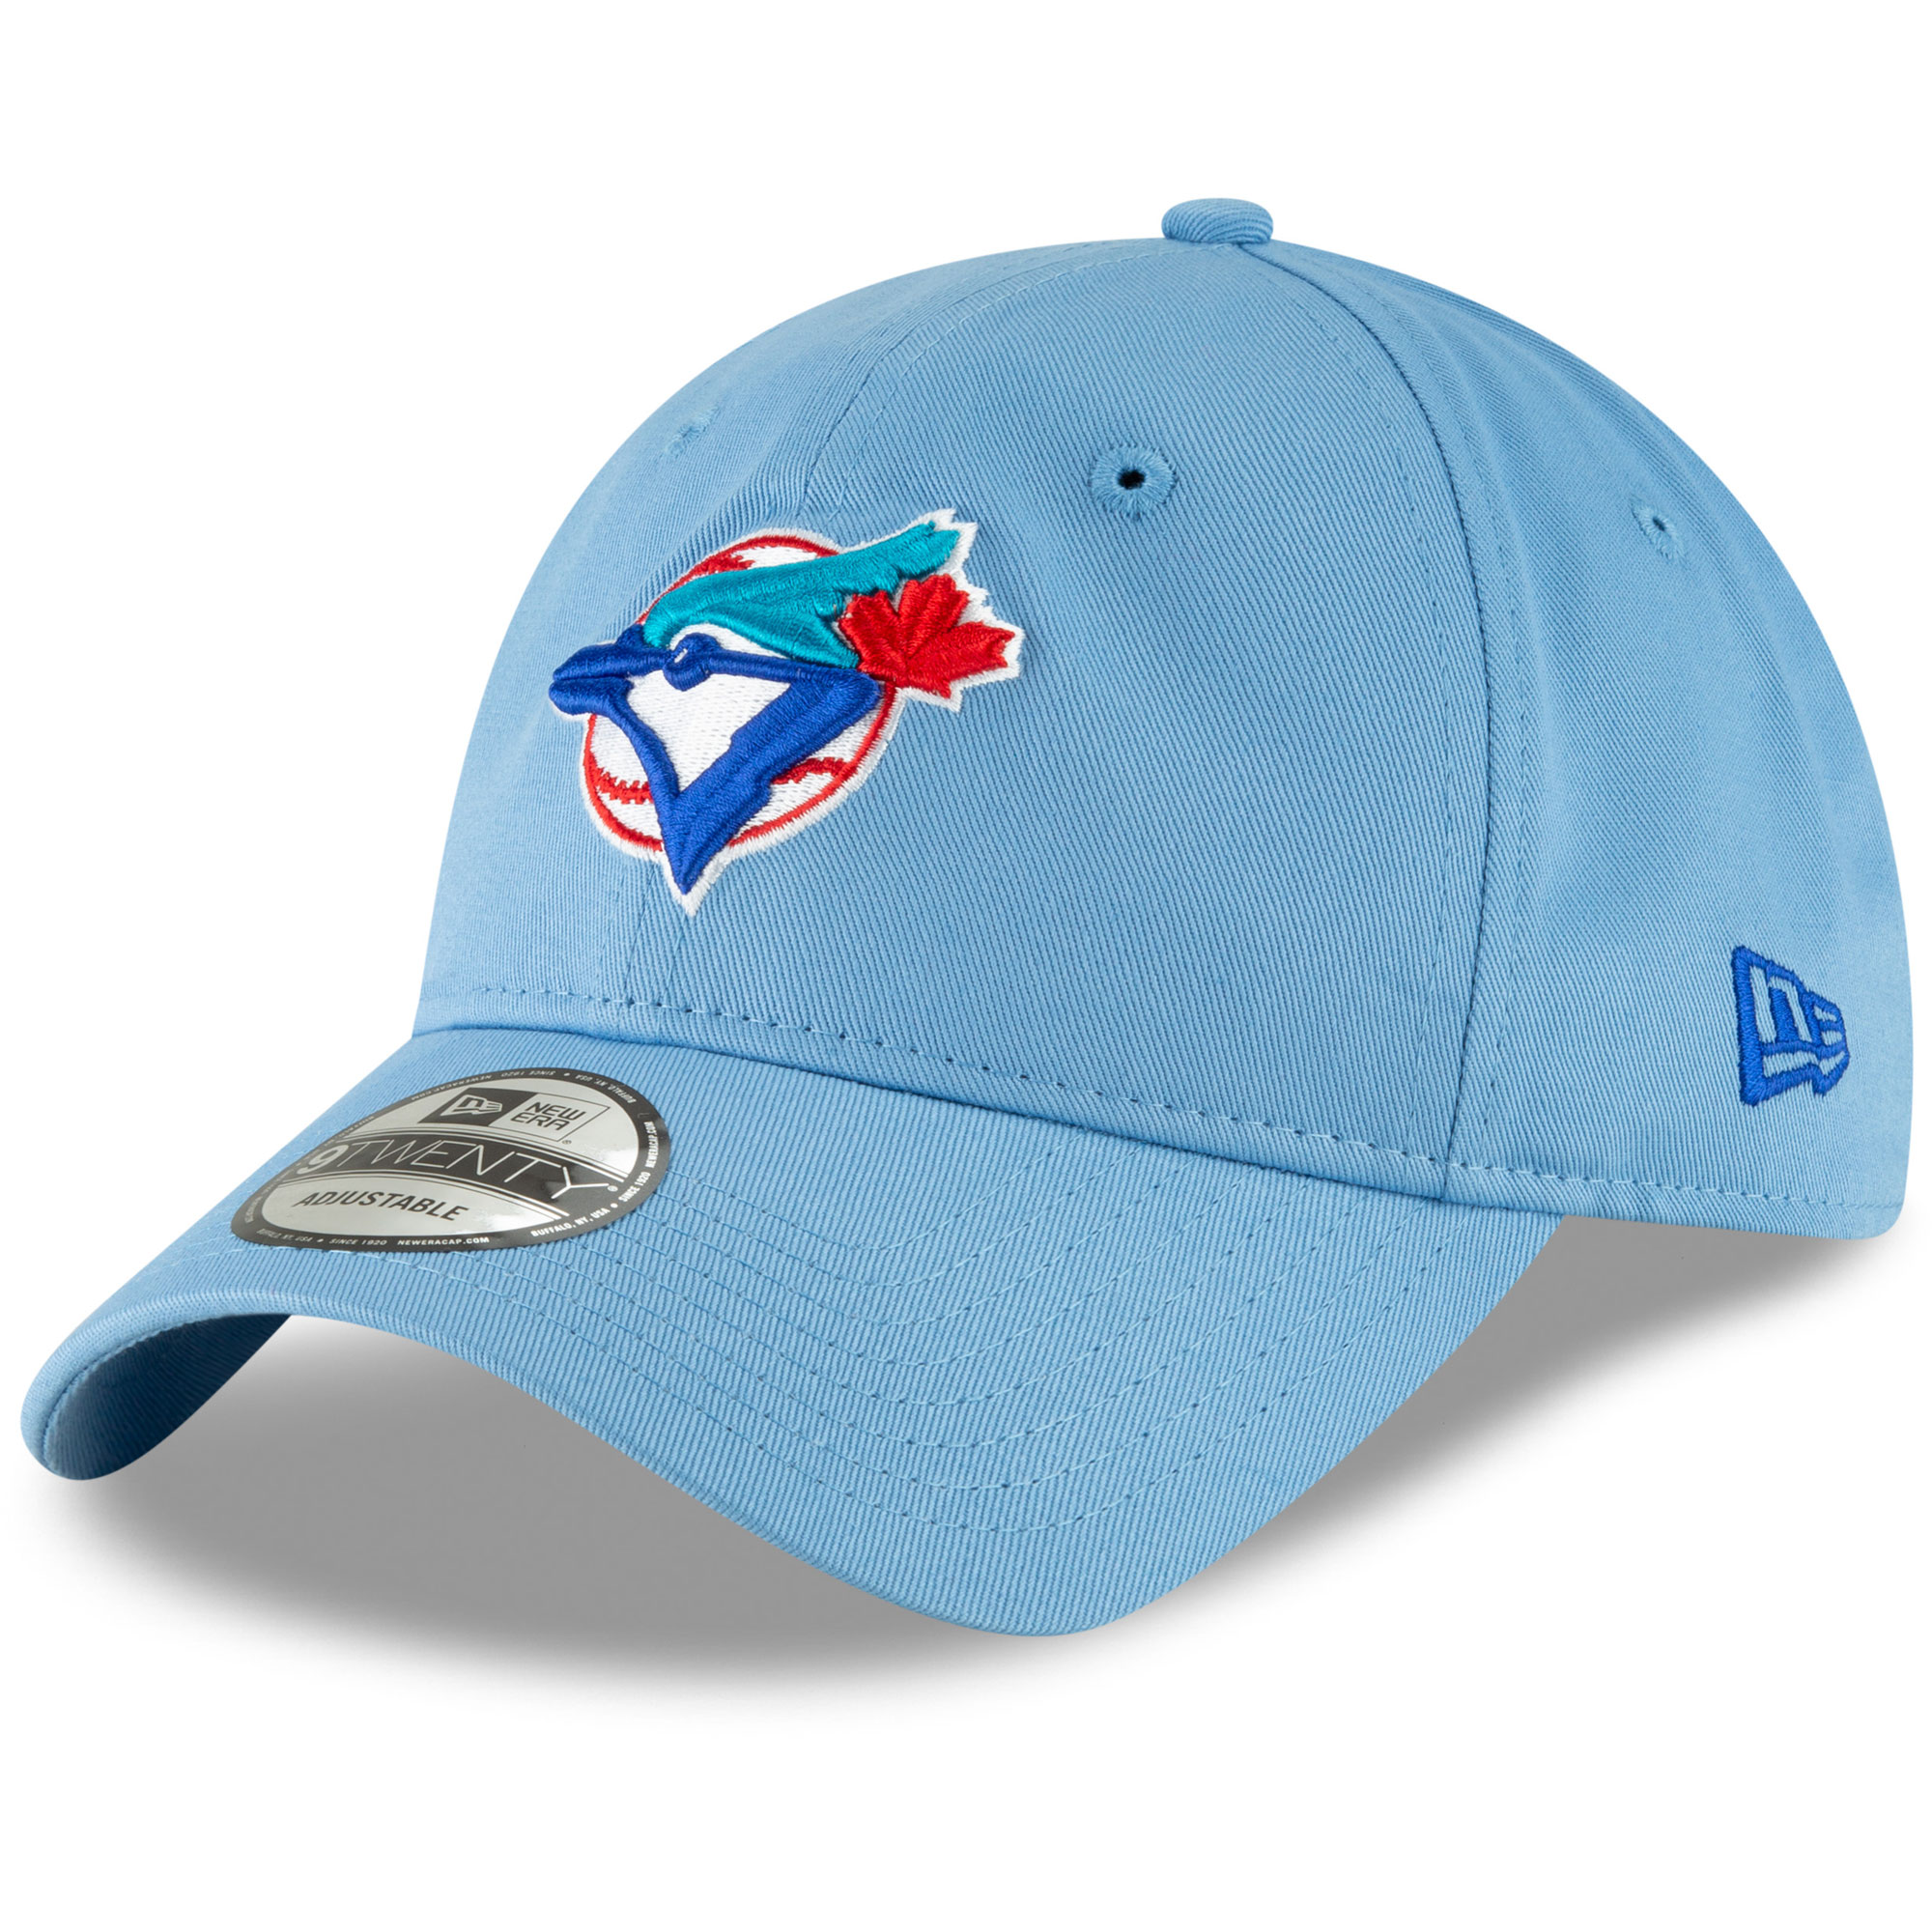 Toronto Blue Jays New Era Cooperstown Collection Core Classic Replica 9TWENTY Adjustable Hat - Light Blue - OSFA